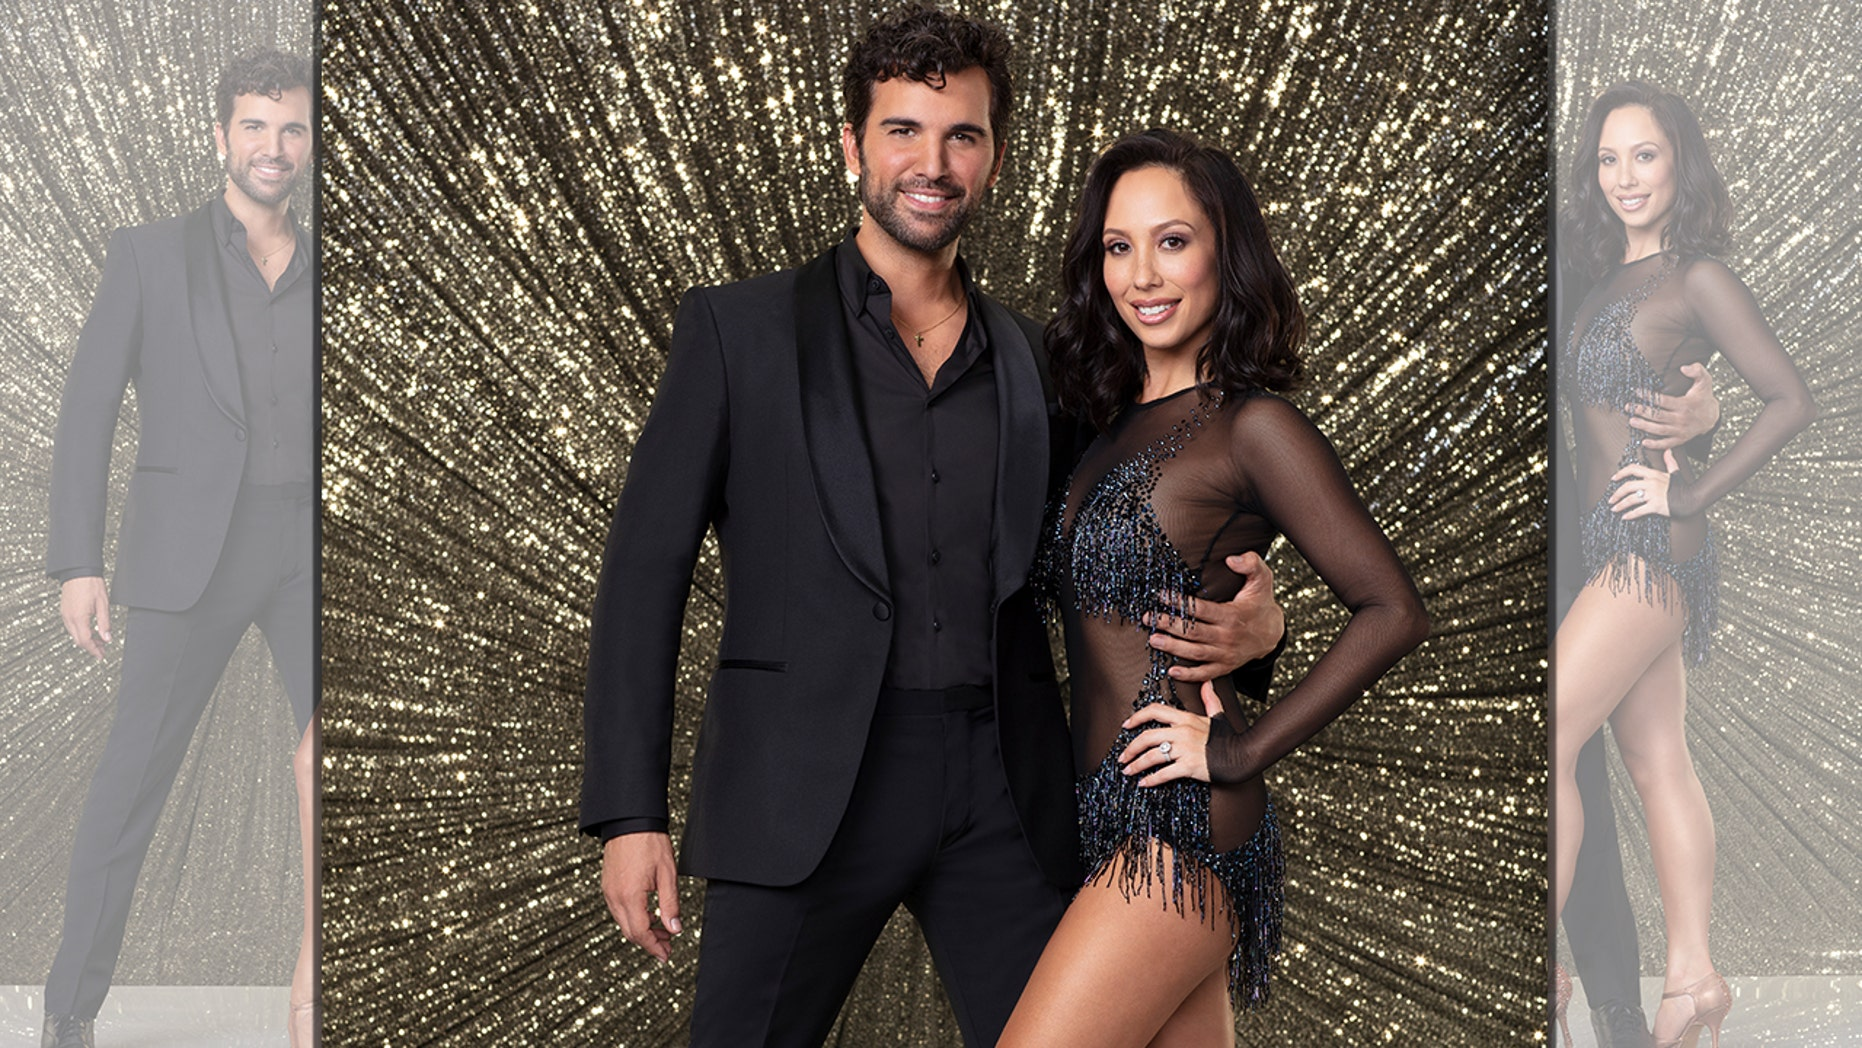 """Dancing with the Stars""  contestant Juan Pablo Di Pace and his partner, Cheryl Burke were eliminated from the ABC reality show Monday night."